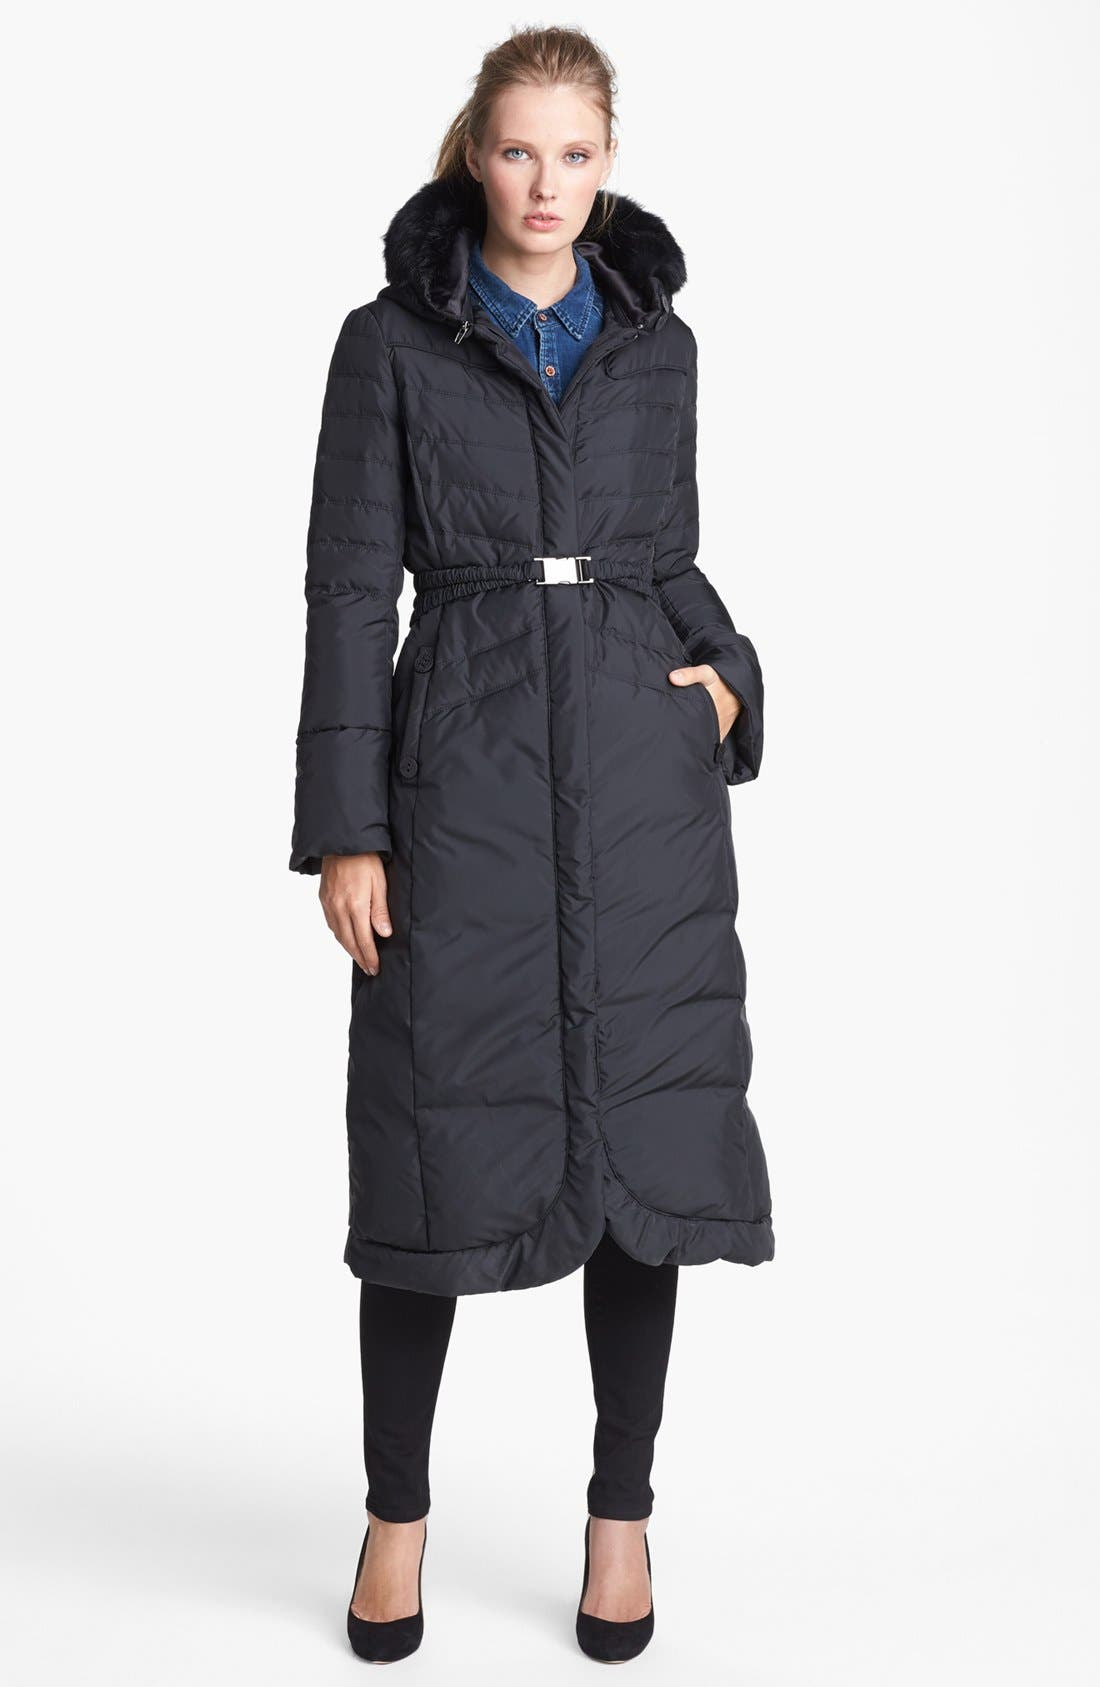 Alternate Image 1 Selected - T Tahari 'Chiara' Genuine Rabbit Fur Trim Long Down Coat